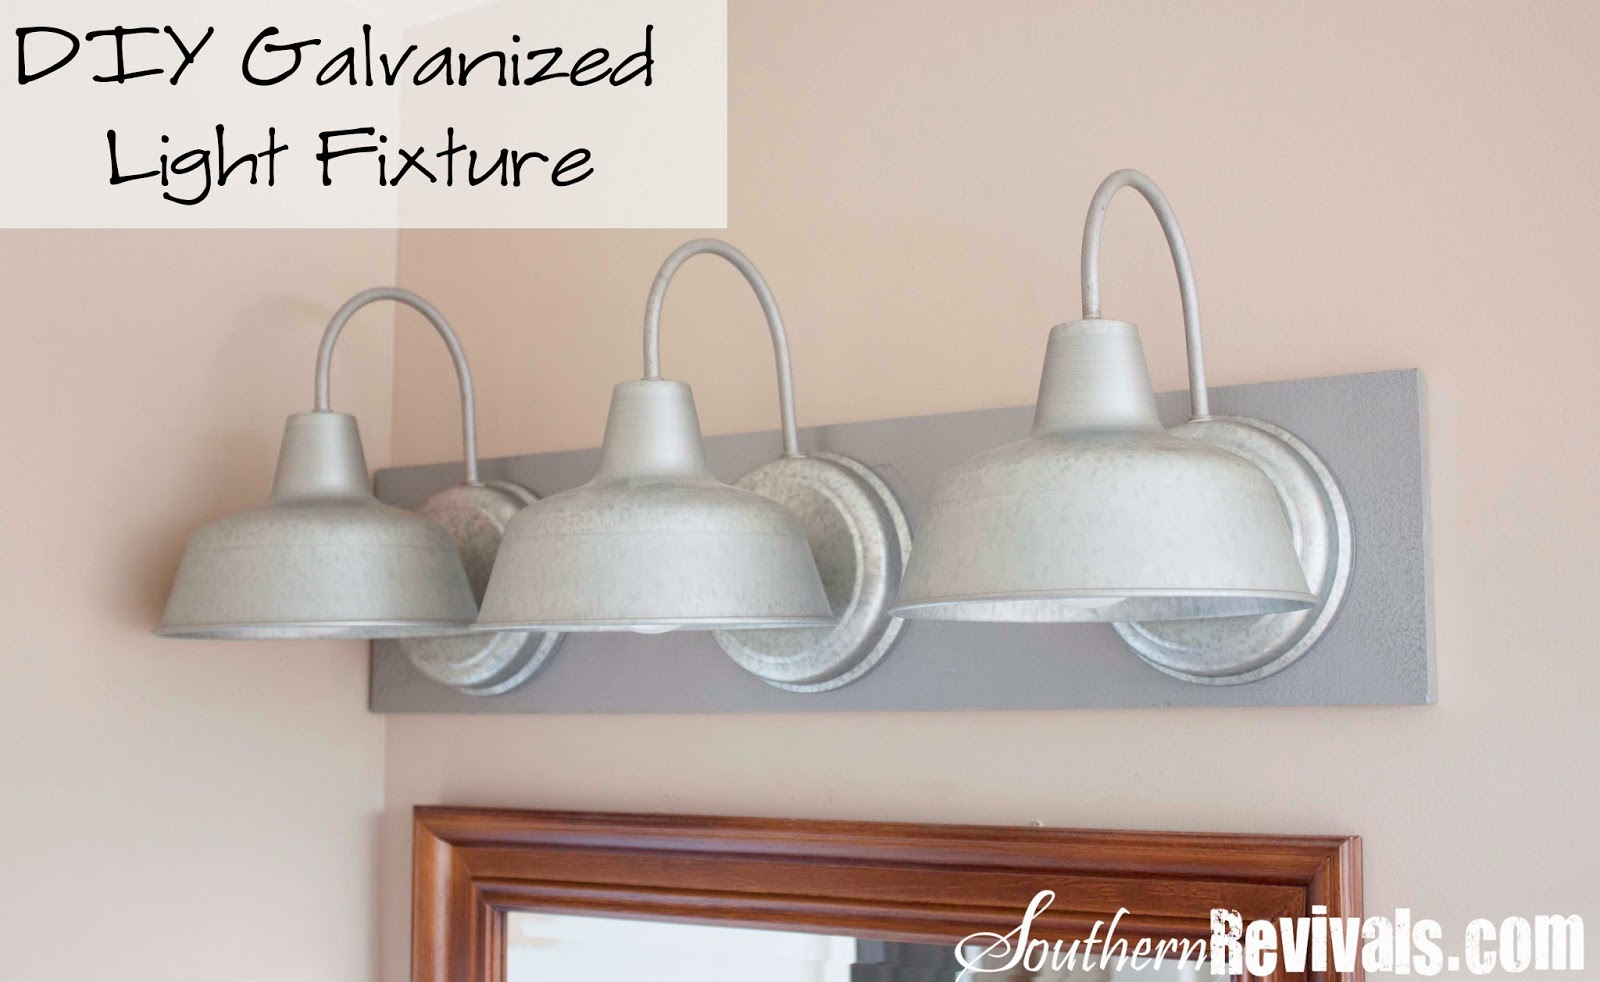 Bathroom Vanity Lights Diy : DIY Triple Galvanized Gooseneck Vanity Light Fixture for under USD 100 - Southern Revivals